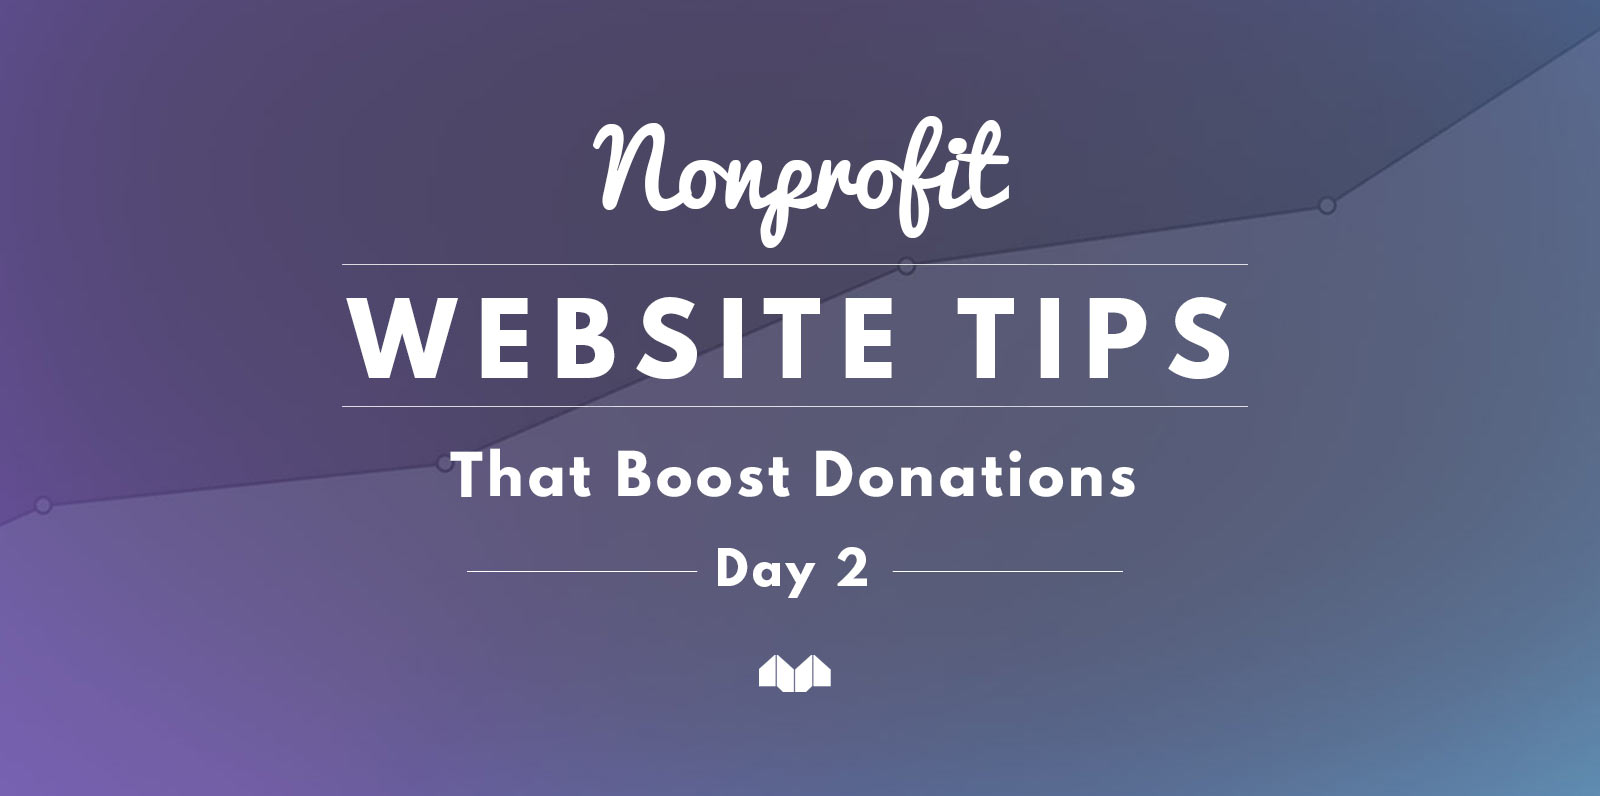 7 Easy Steps to Getting More Donations through your Nonprofit's Website